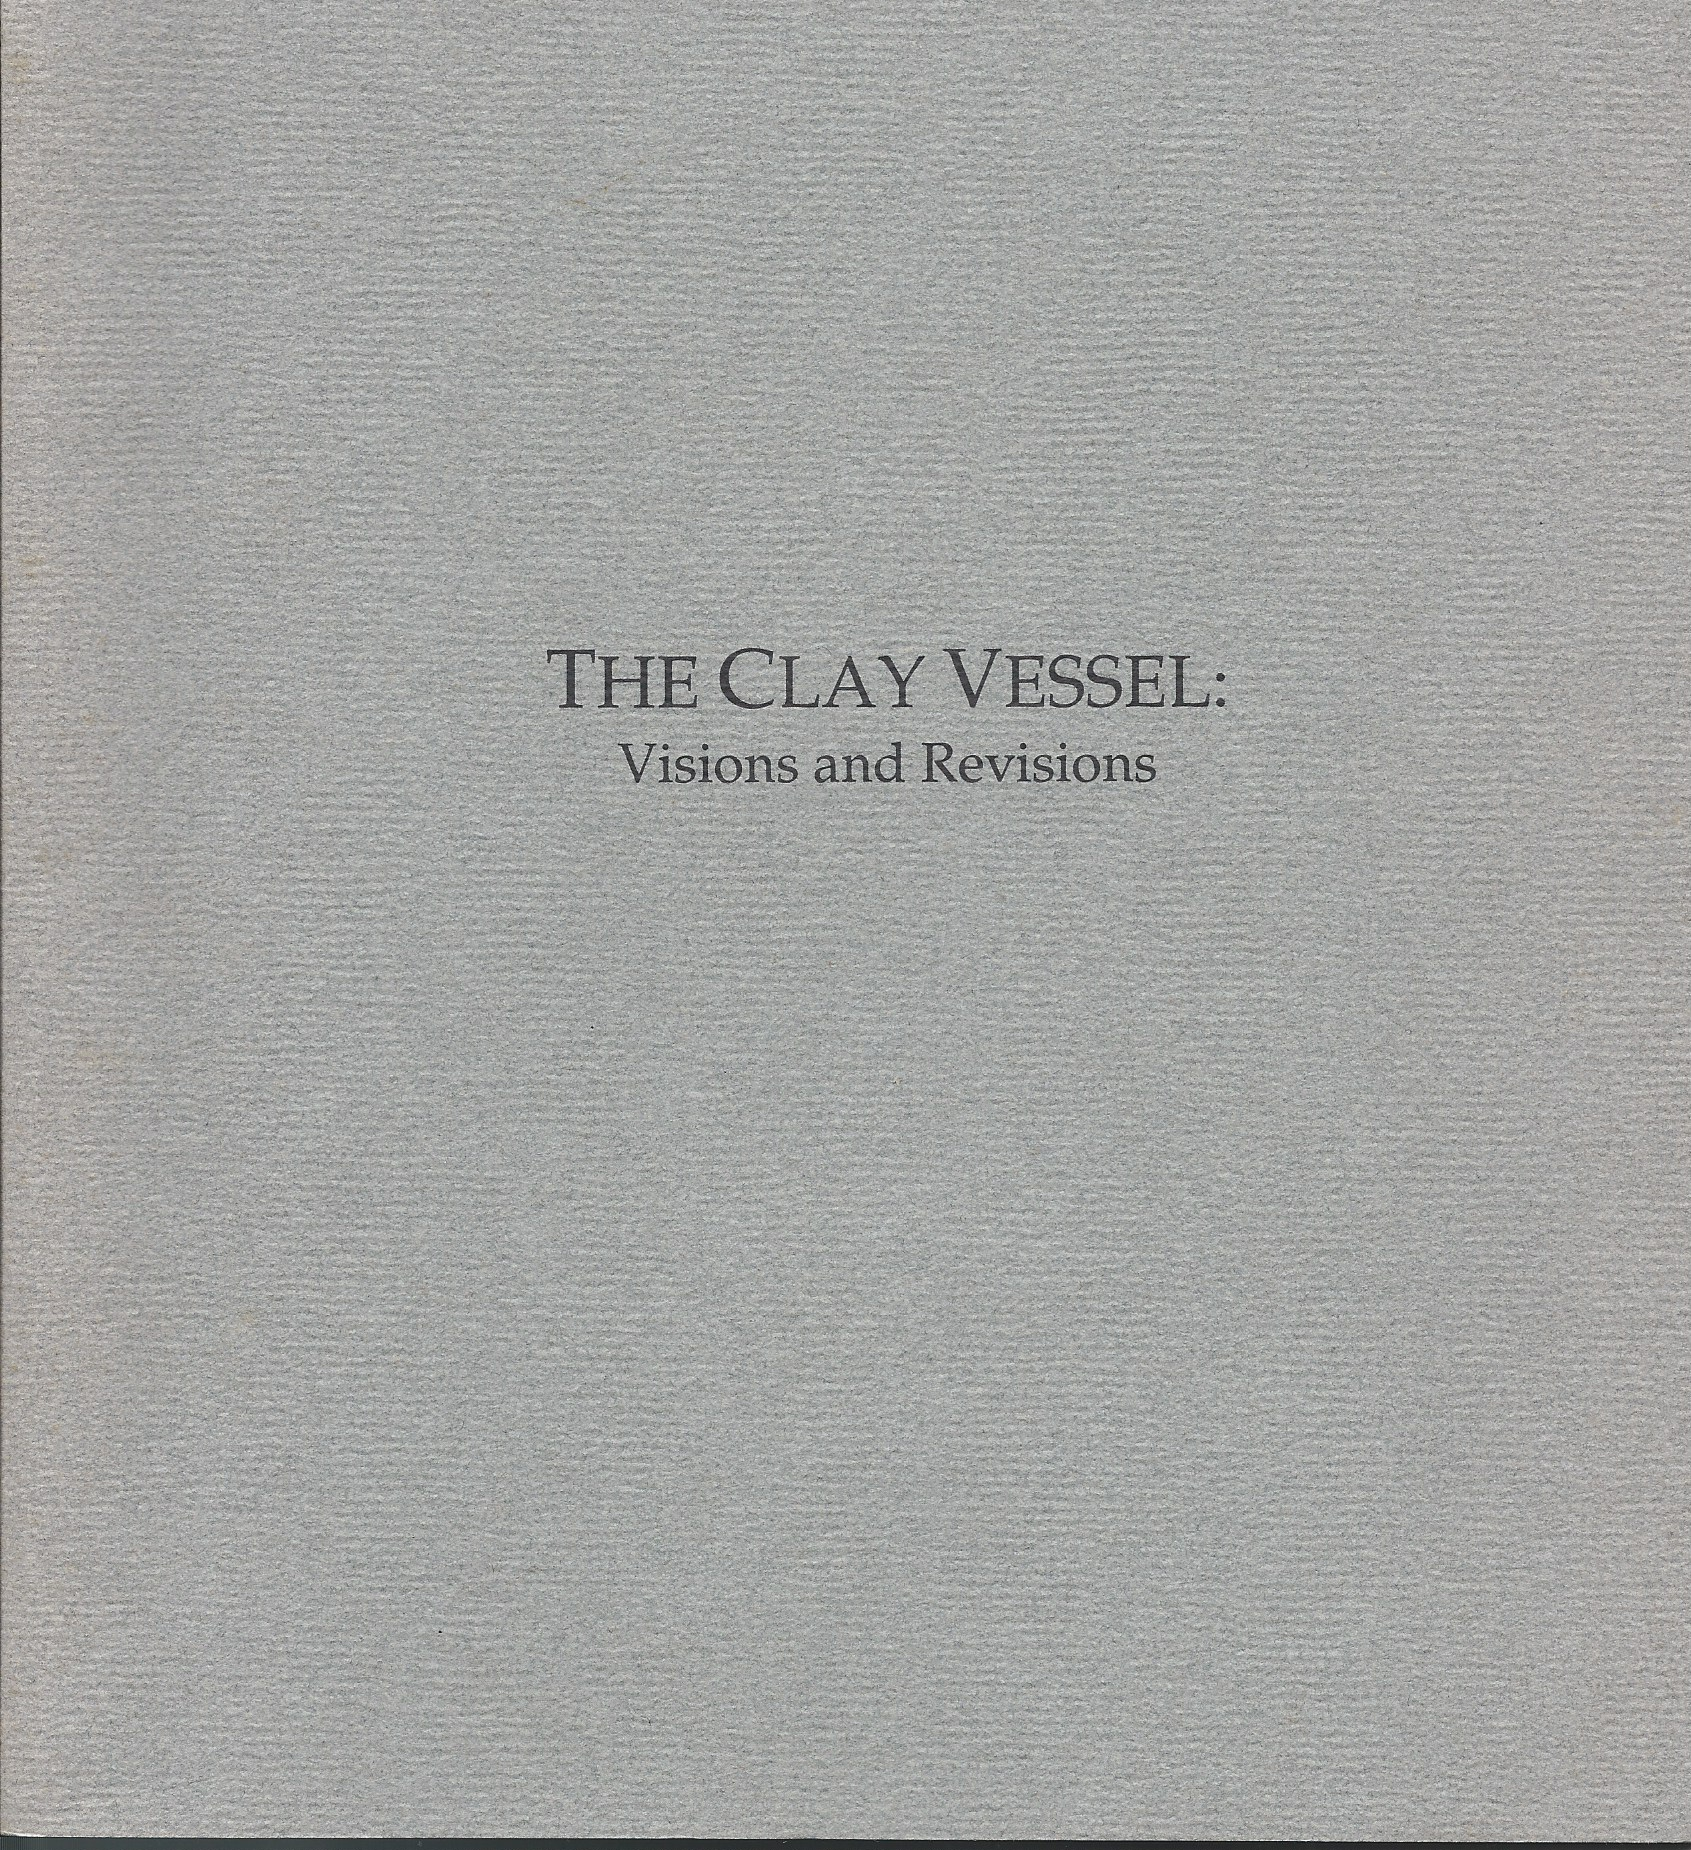 Image for Visions and Revisions; THE CLAY VESSEL